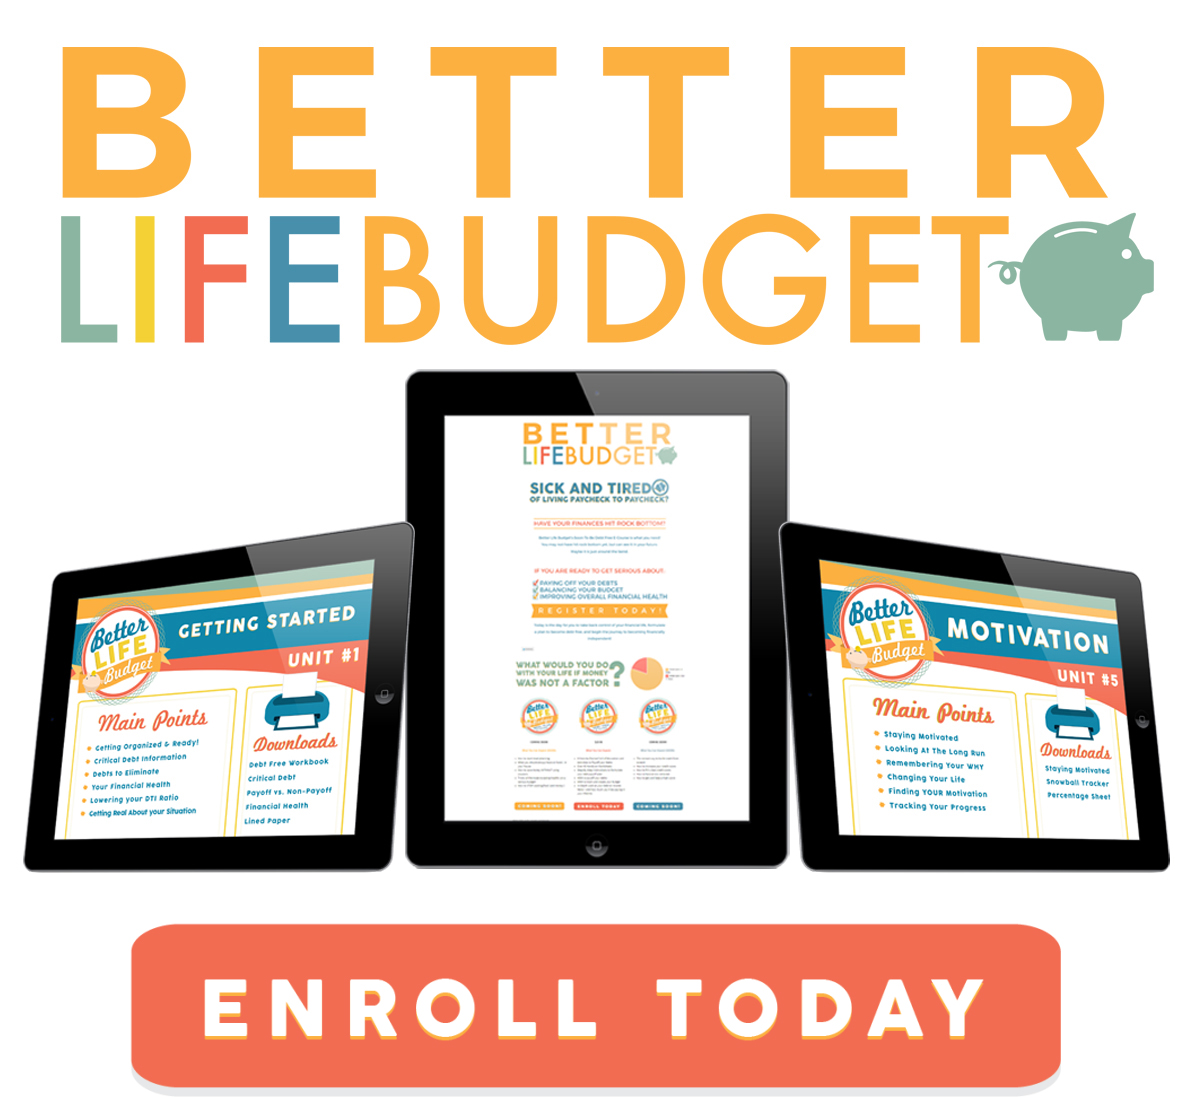 Better Life Budget Enroll Today